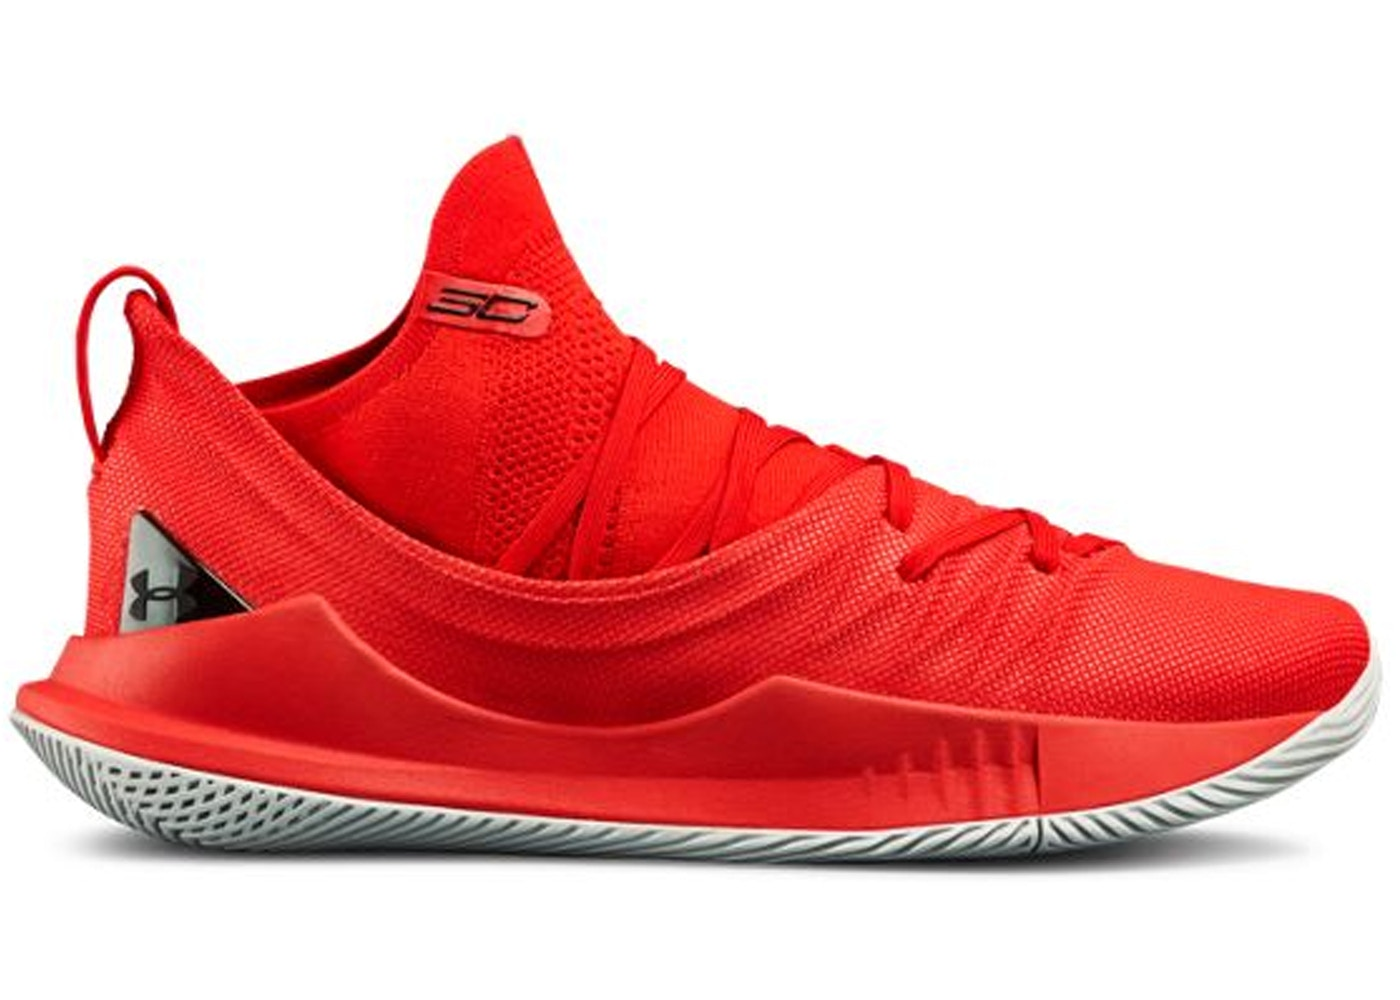 8d0dfccc Under Armour Curry 5 Wired Different - 3020657-600